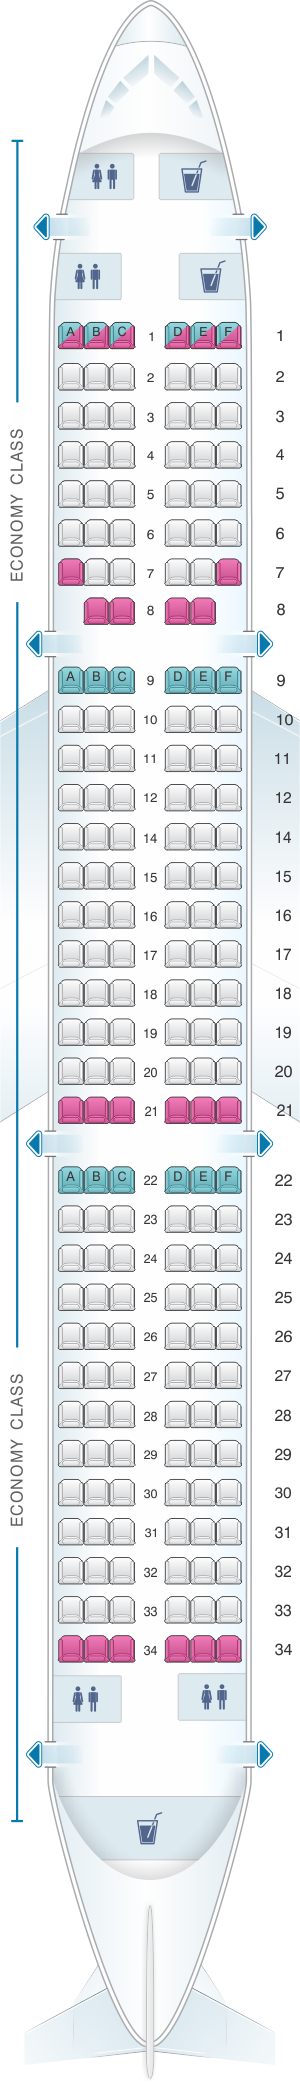 Seat map for Qatar Airways Airbus A321 200 196pax